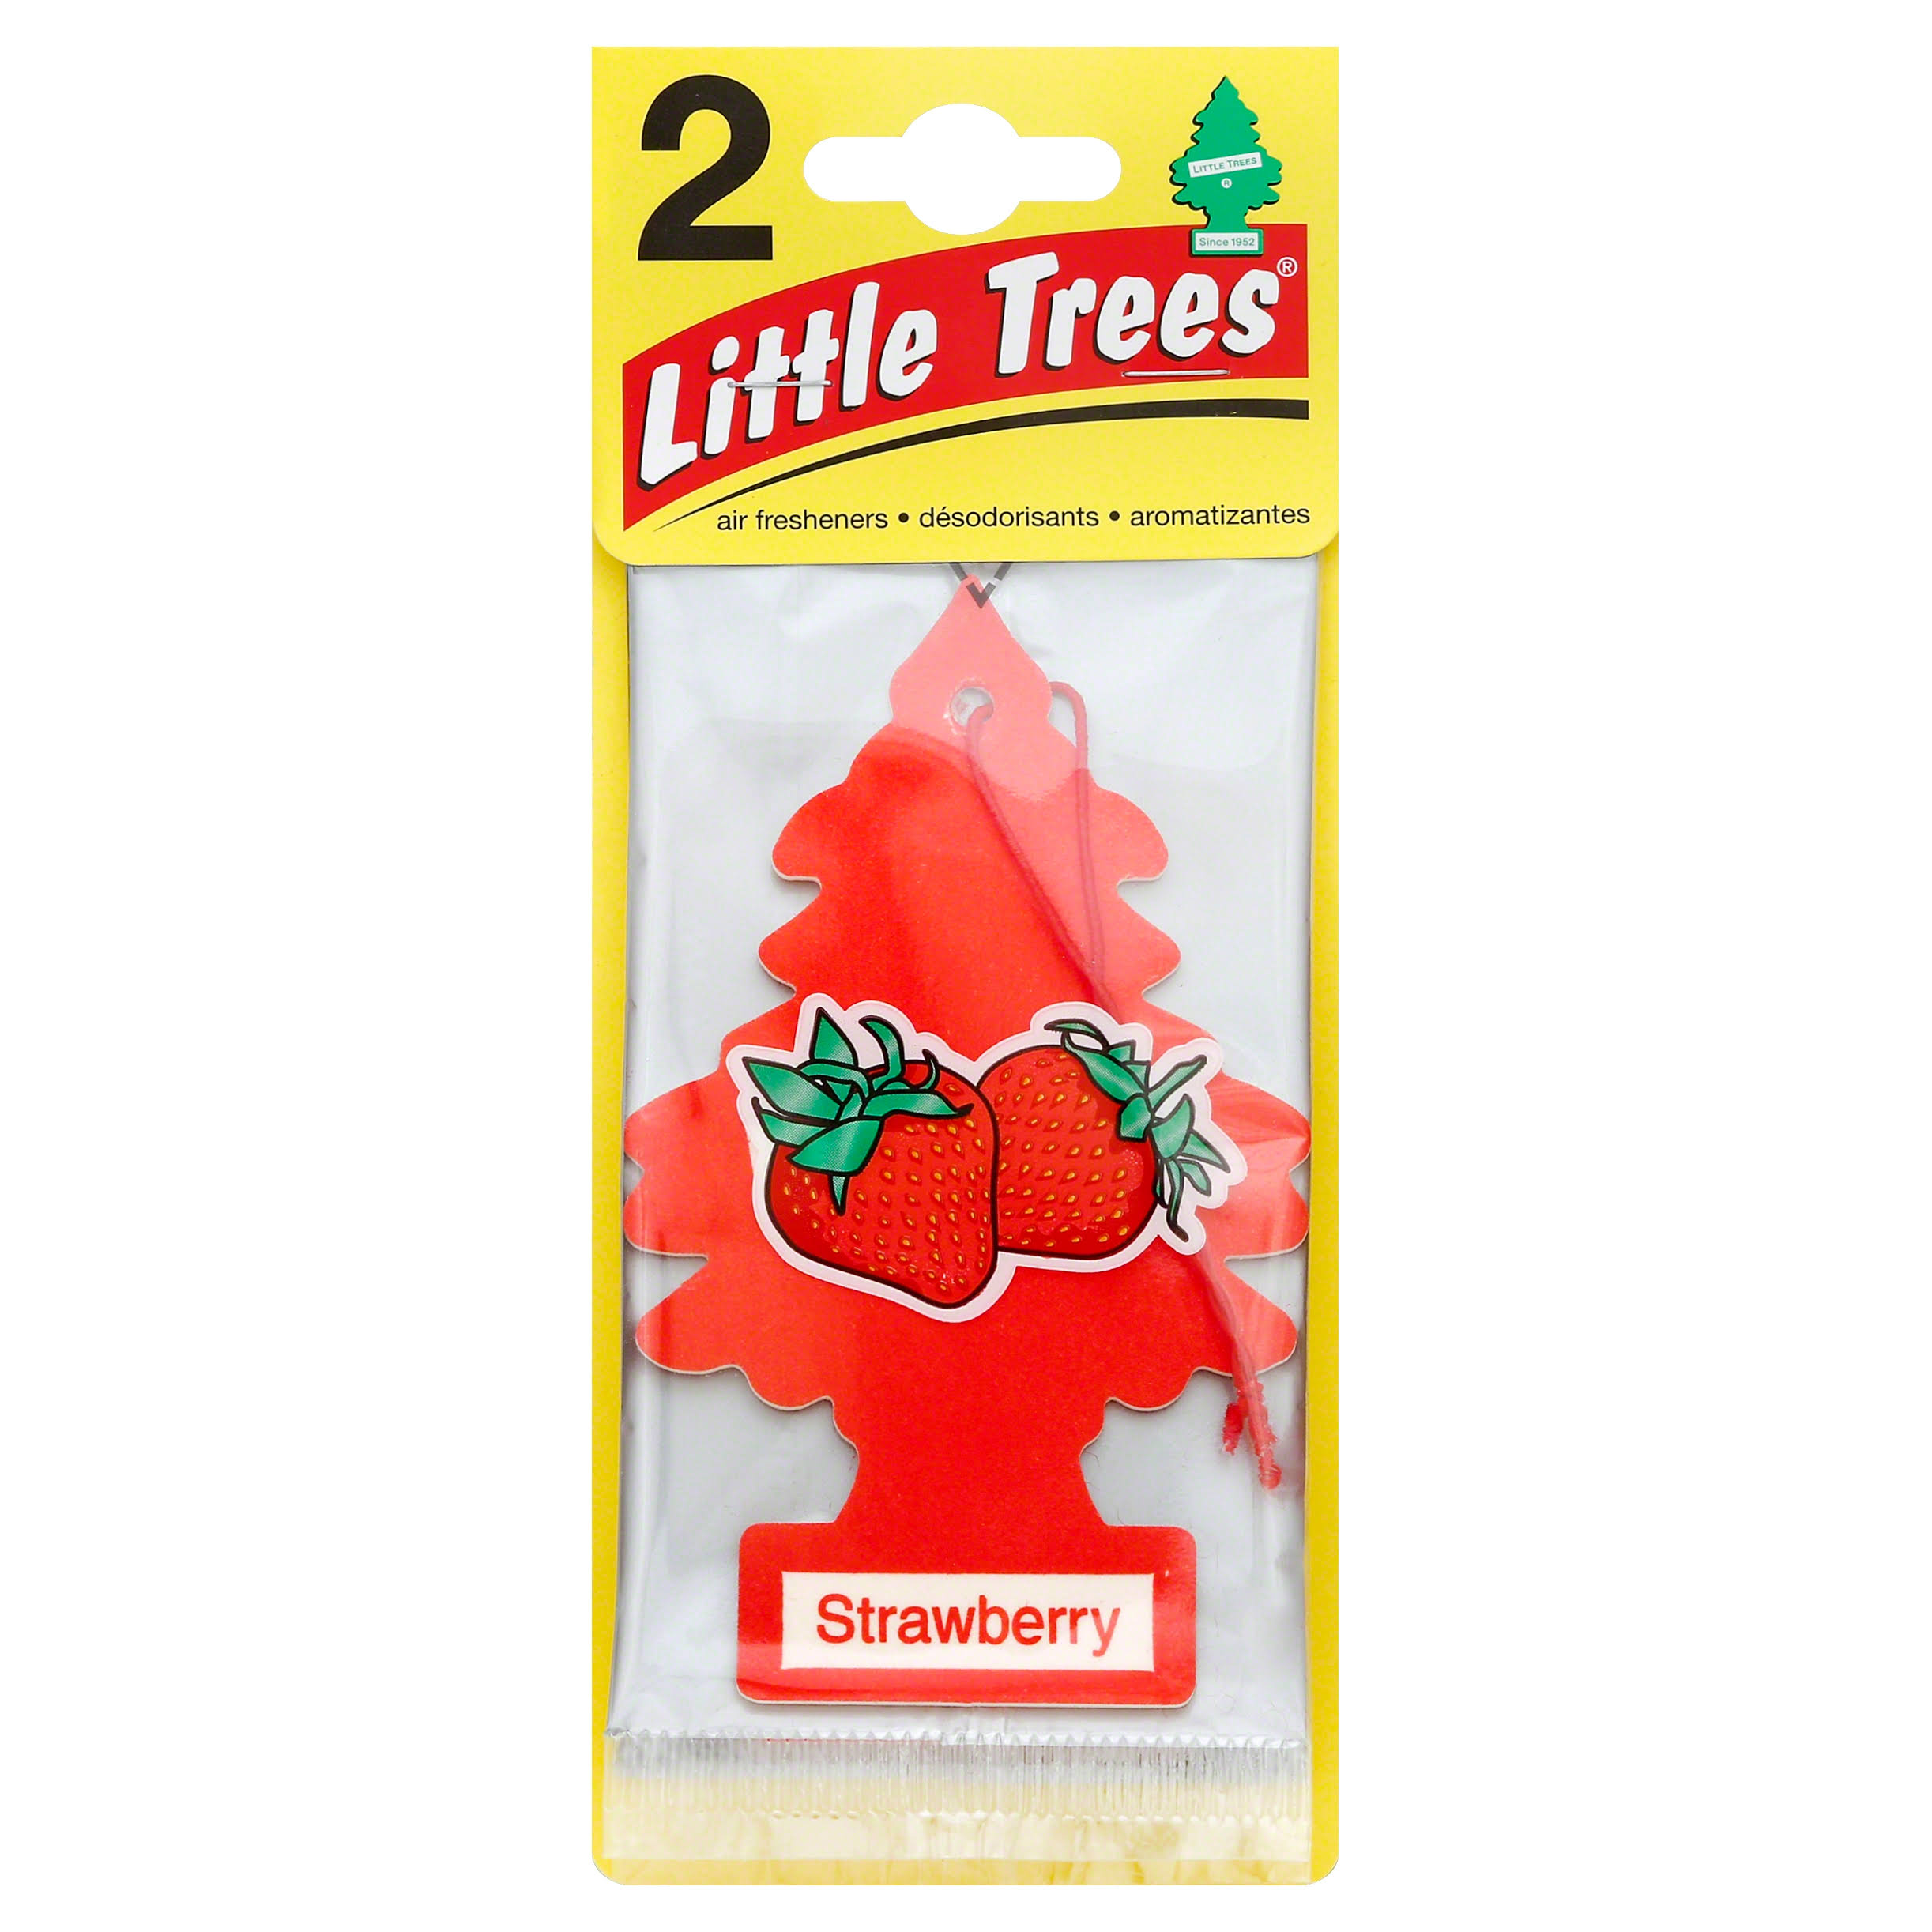 Little Trees Air Fresheners, Strawberry - 2 fresheners